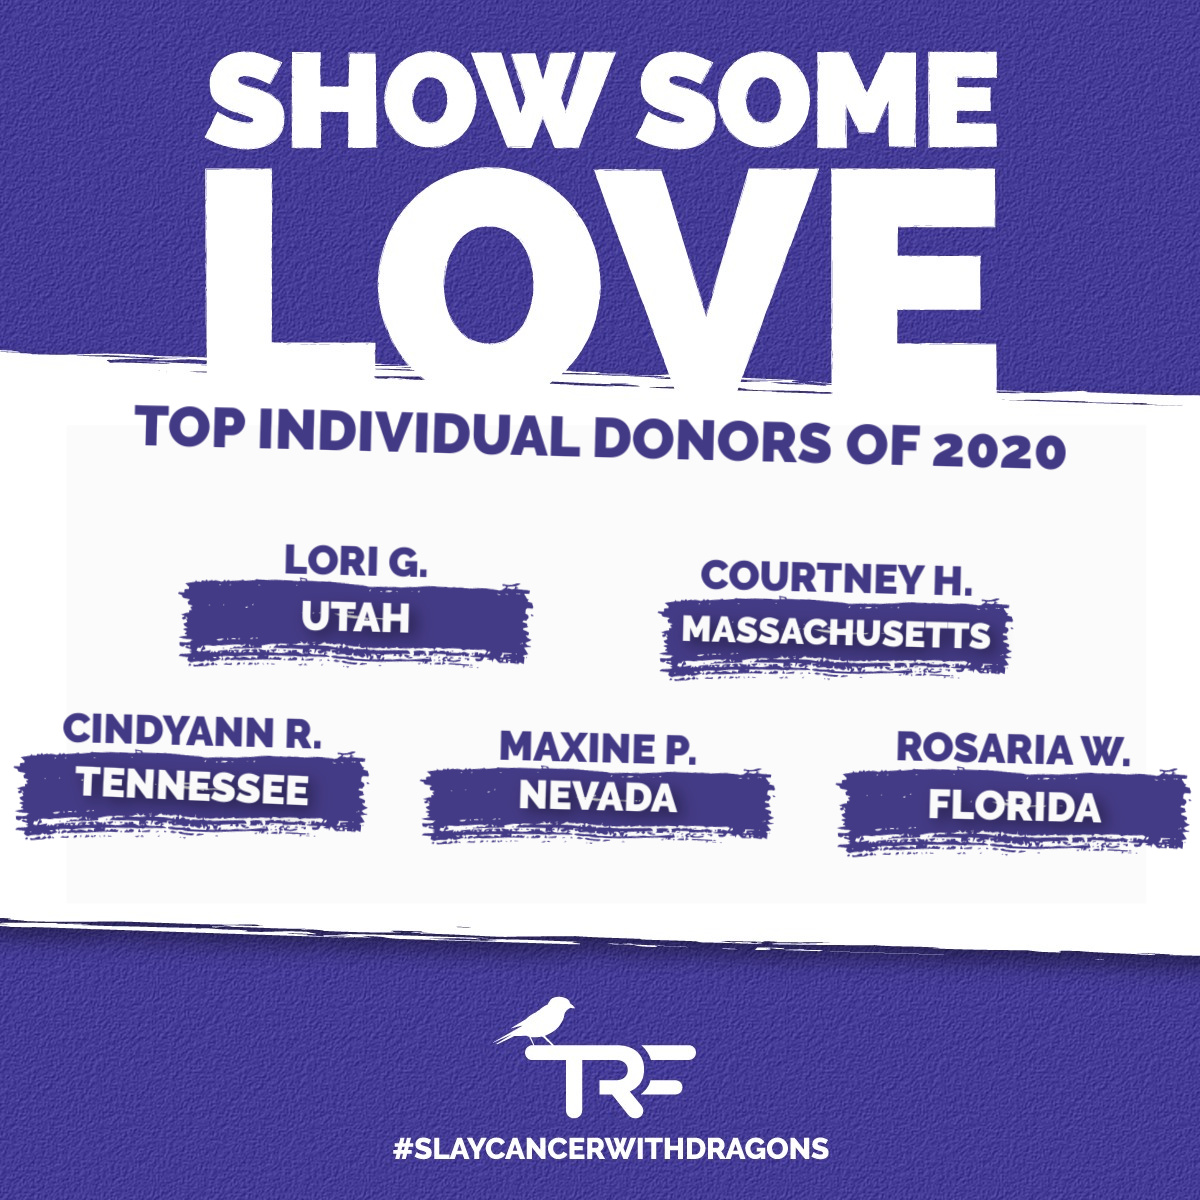 💜😍💜 Our 2020 was better because of Lori, Courtney, CindyAnn, Maxine, and Rosaria - & hundreds more of you.  THANK YOU for your willingness to donate to our pediatric cancer families during this last year of uncertainty. We couldn't be doing what we're doing without you.